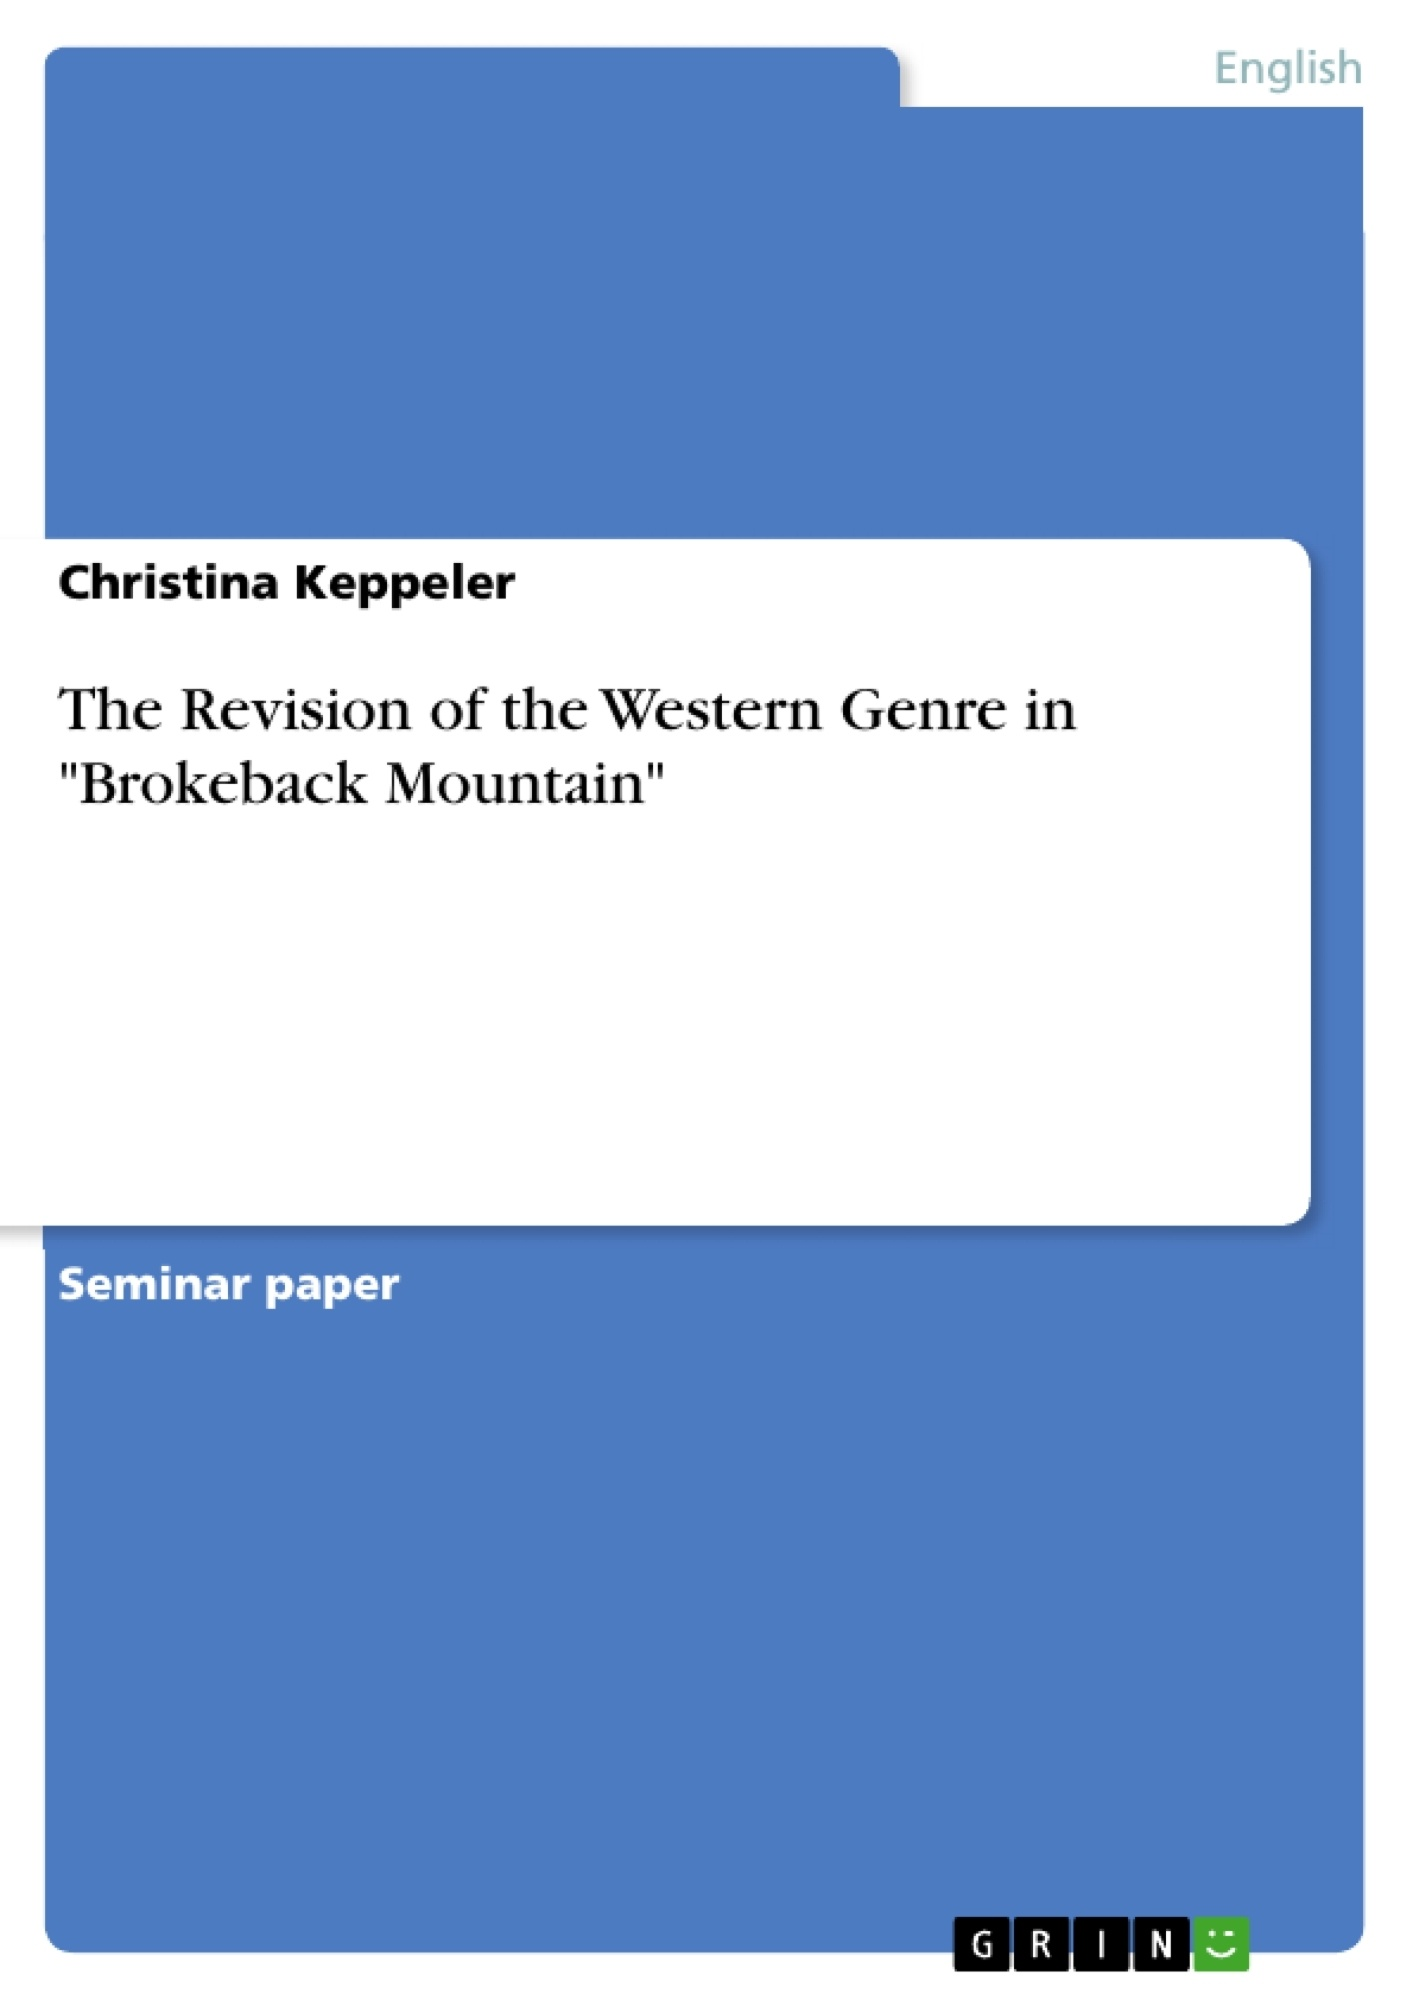 """Title: The Revision of the Western Genre in """"Brokeback Mountain"""""""